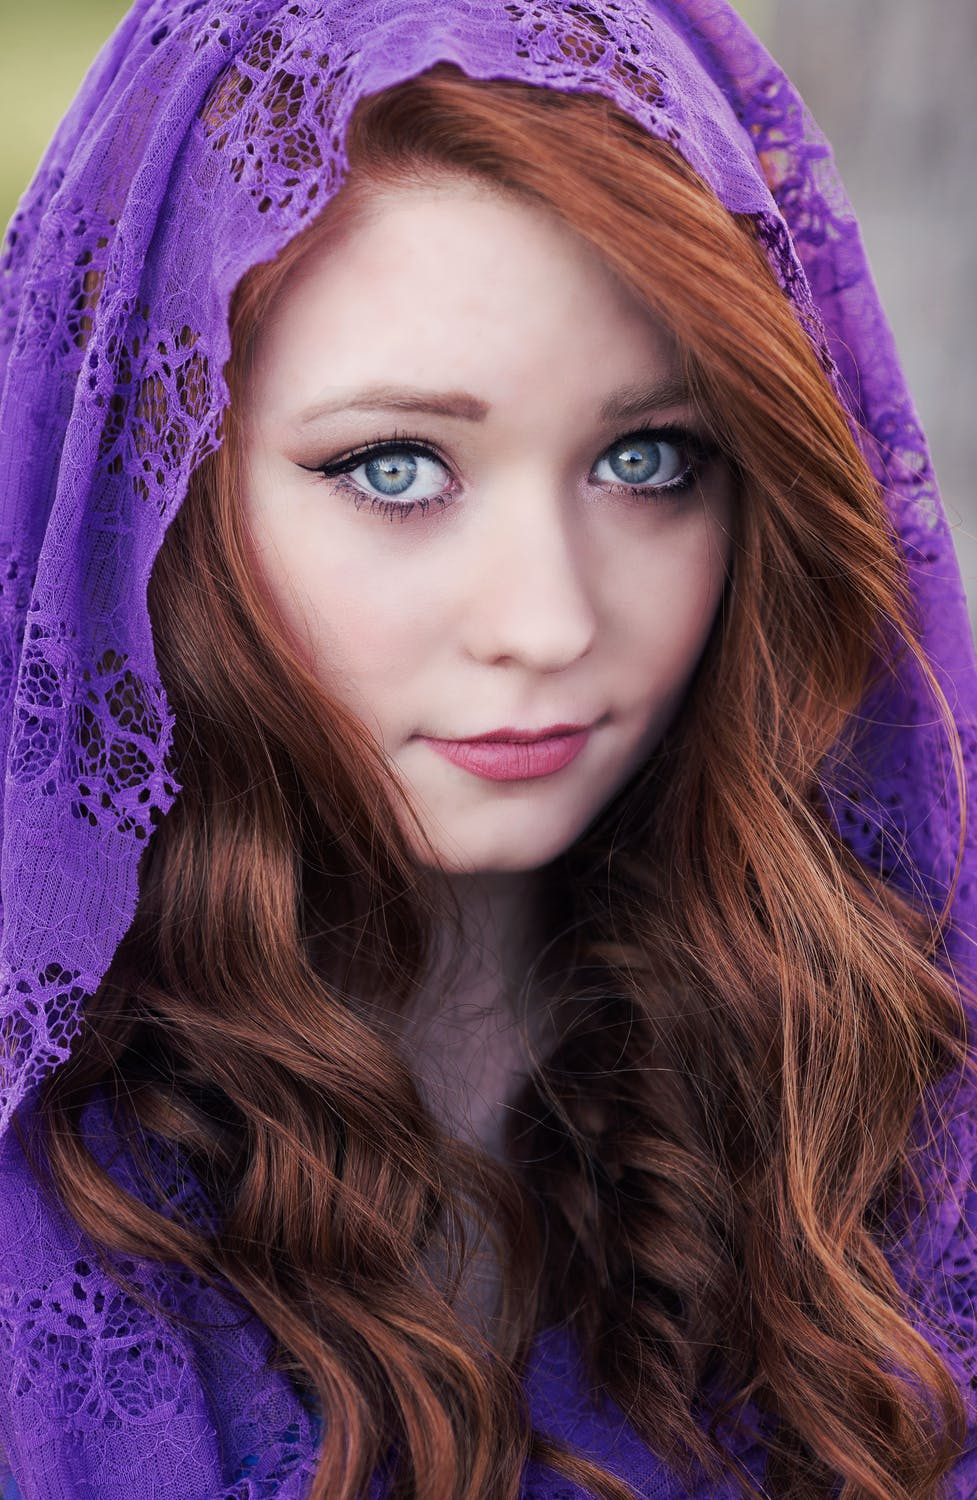 girl with red hair wearing a purple head covering